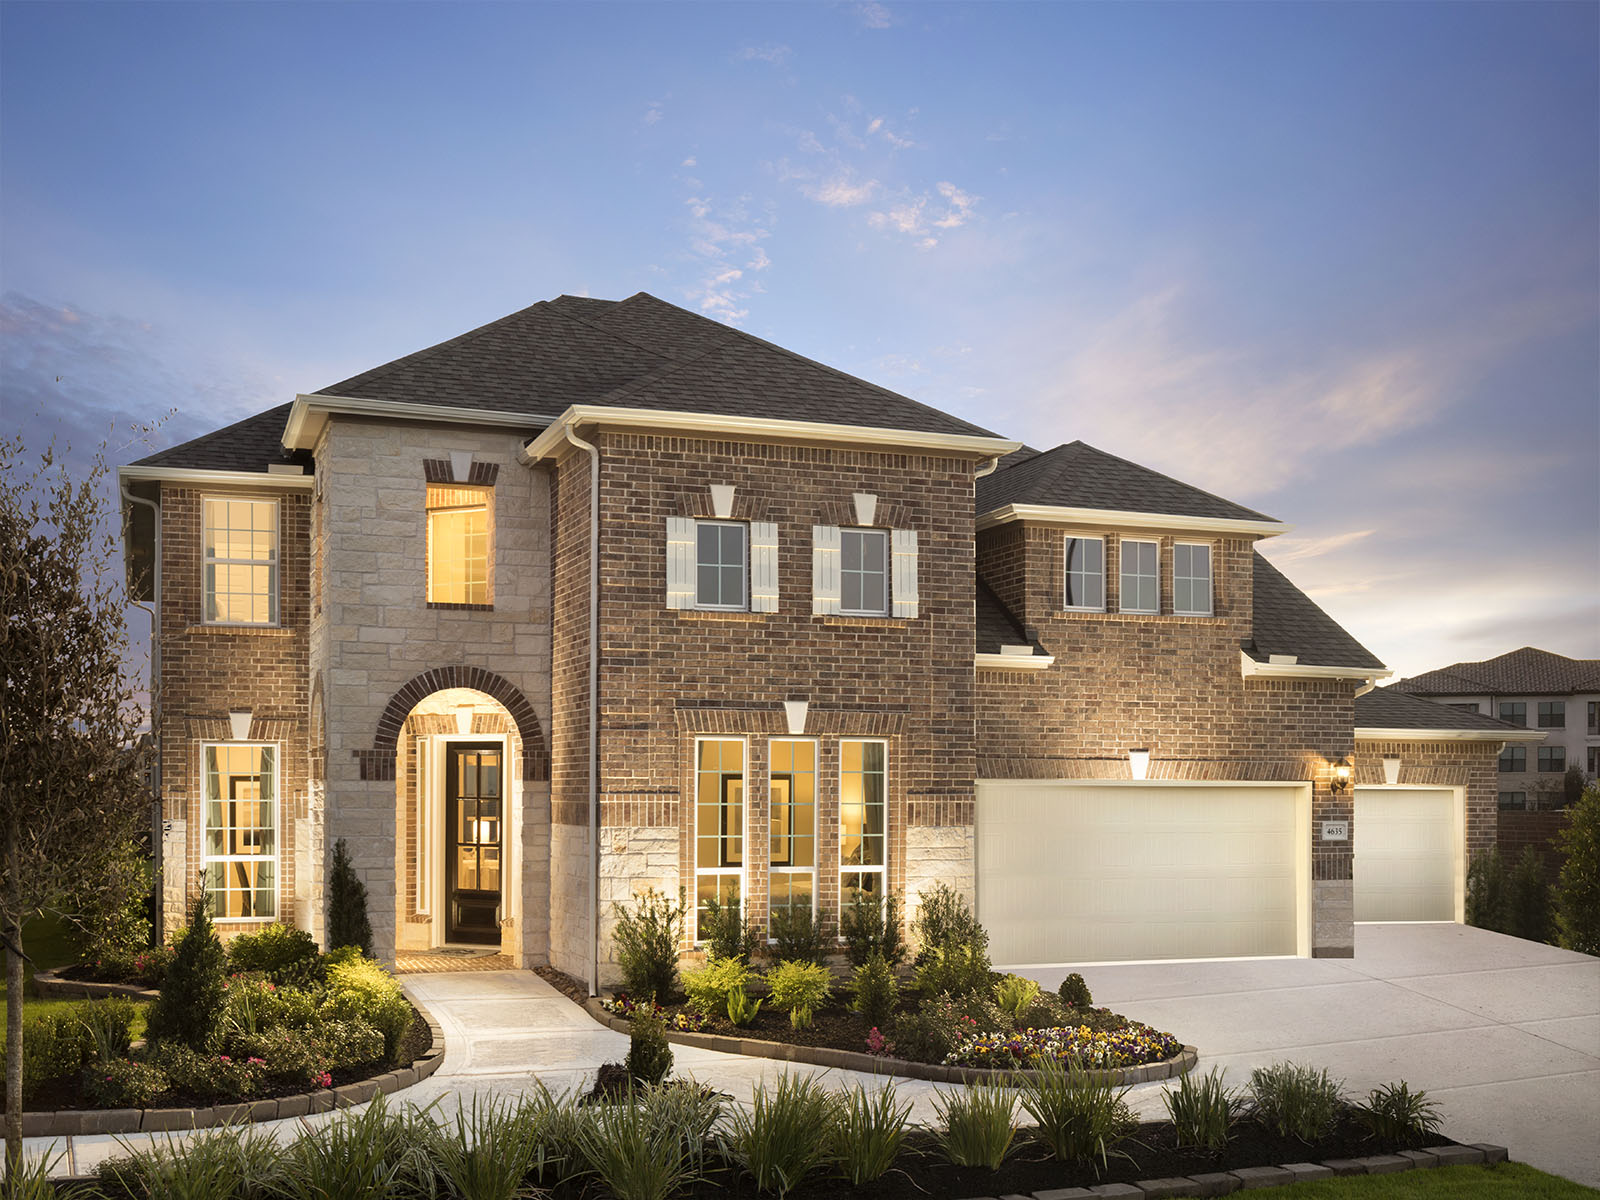 Meritage Homes for Sale in Houston, Texas